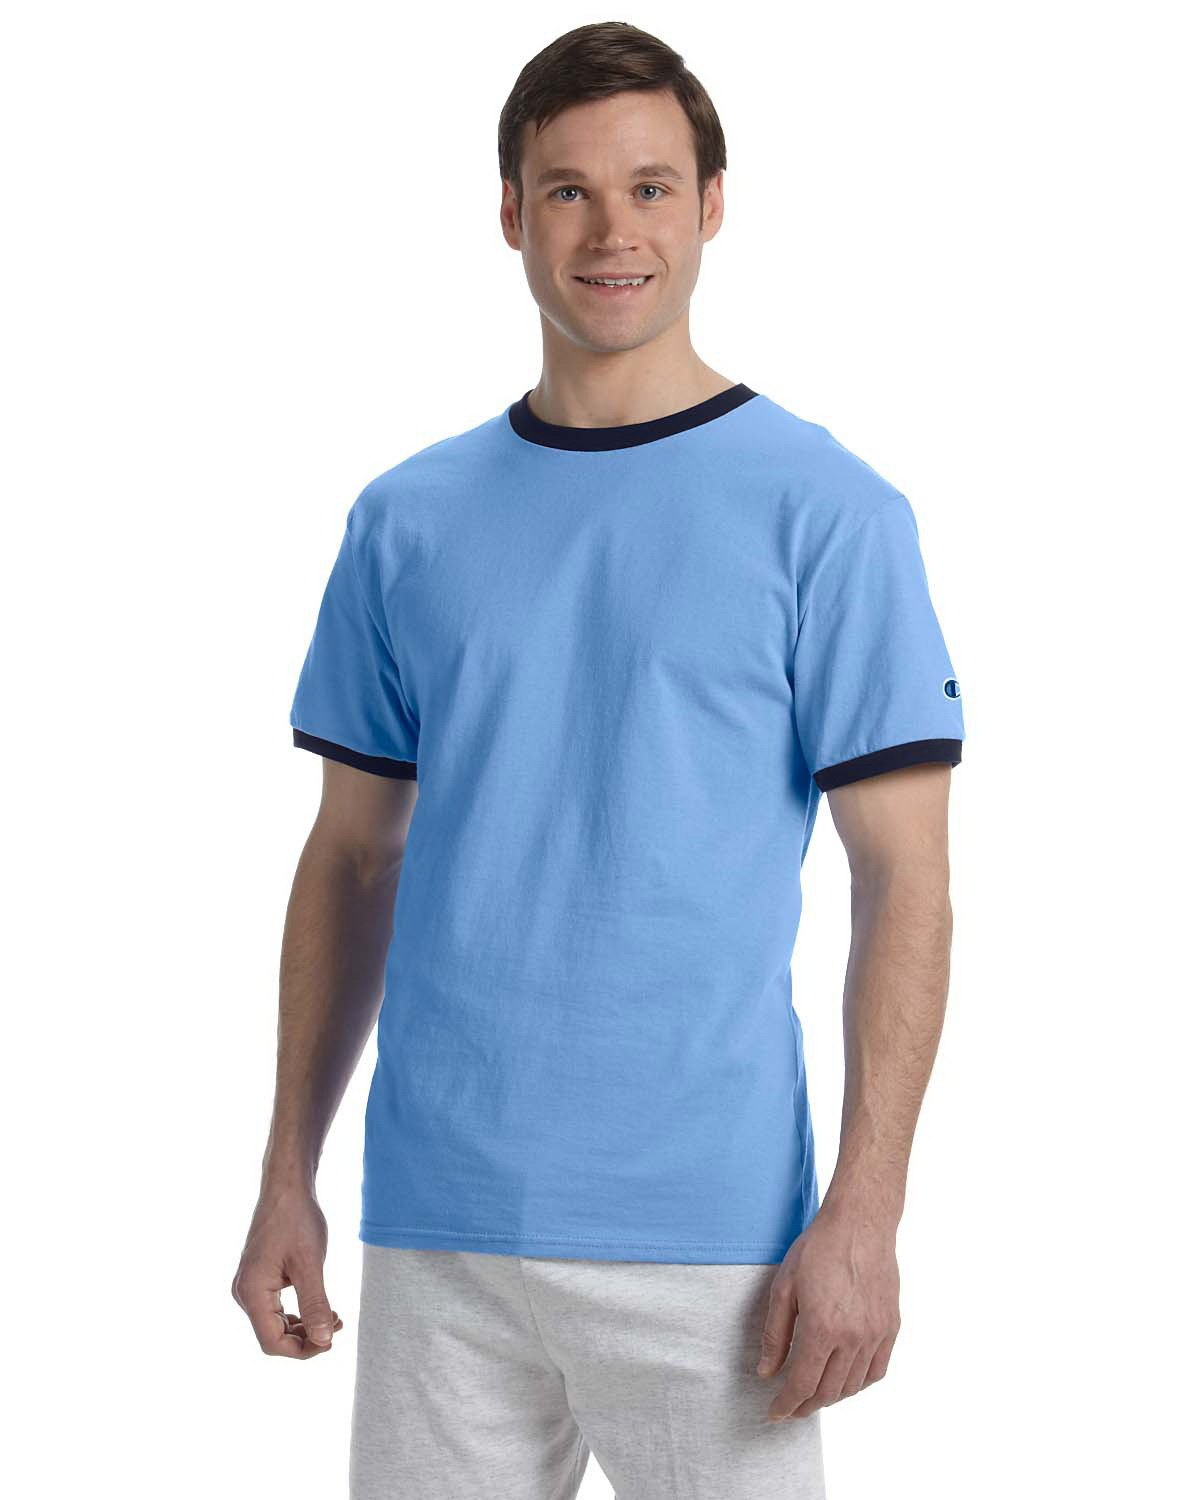 0a604a25 Opentip.com: Champion T1396 6.1 oz. Tagless Ringer T-Shirt, Price/each